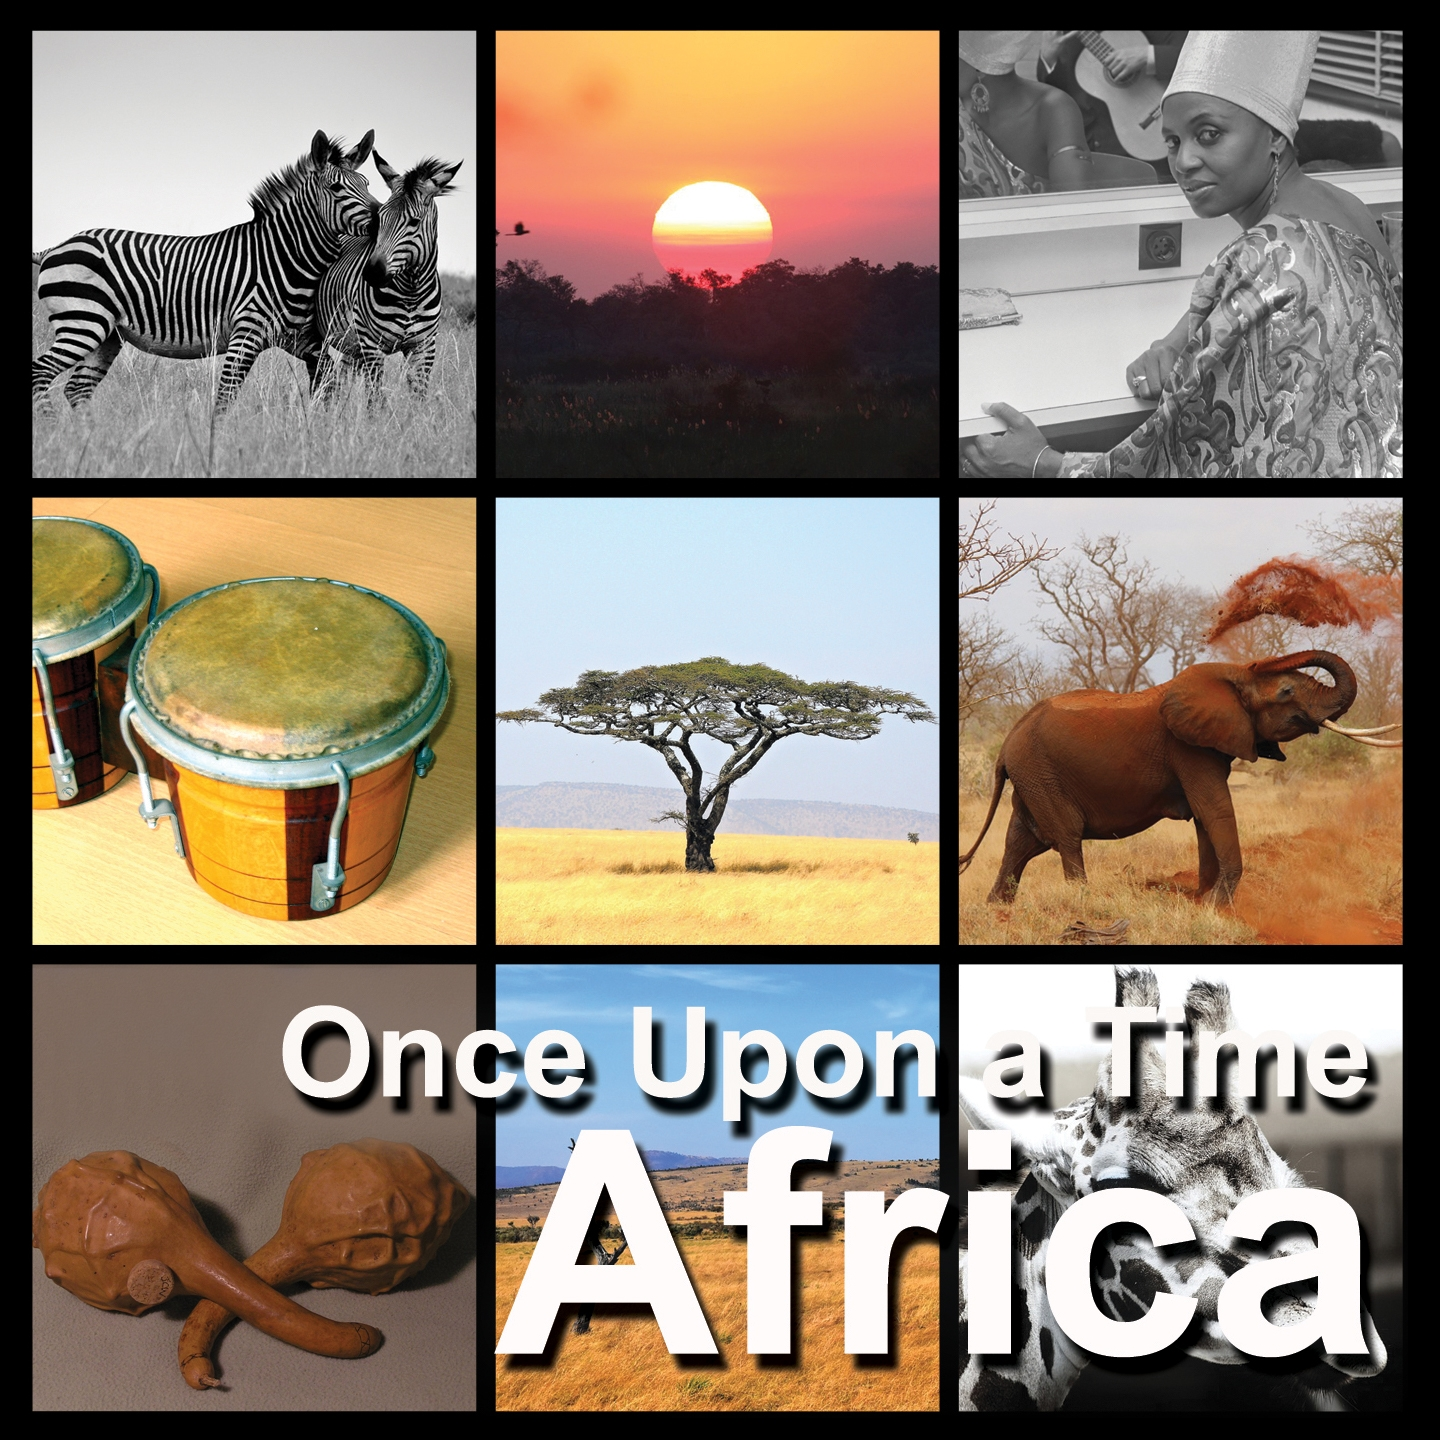 Africa | Once Upon a Time